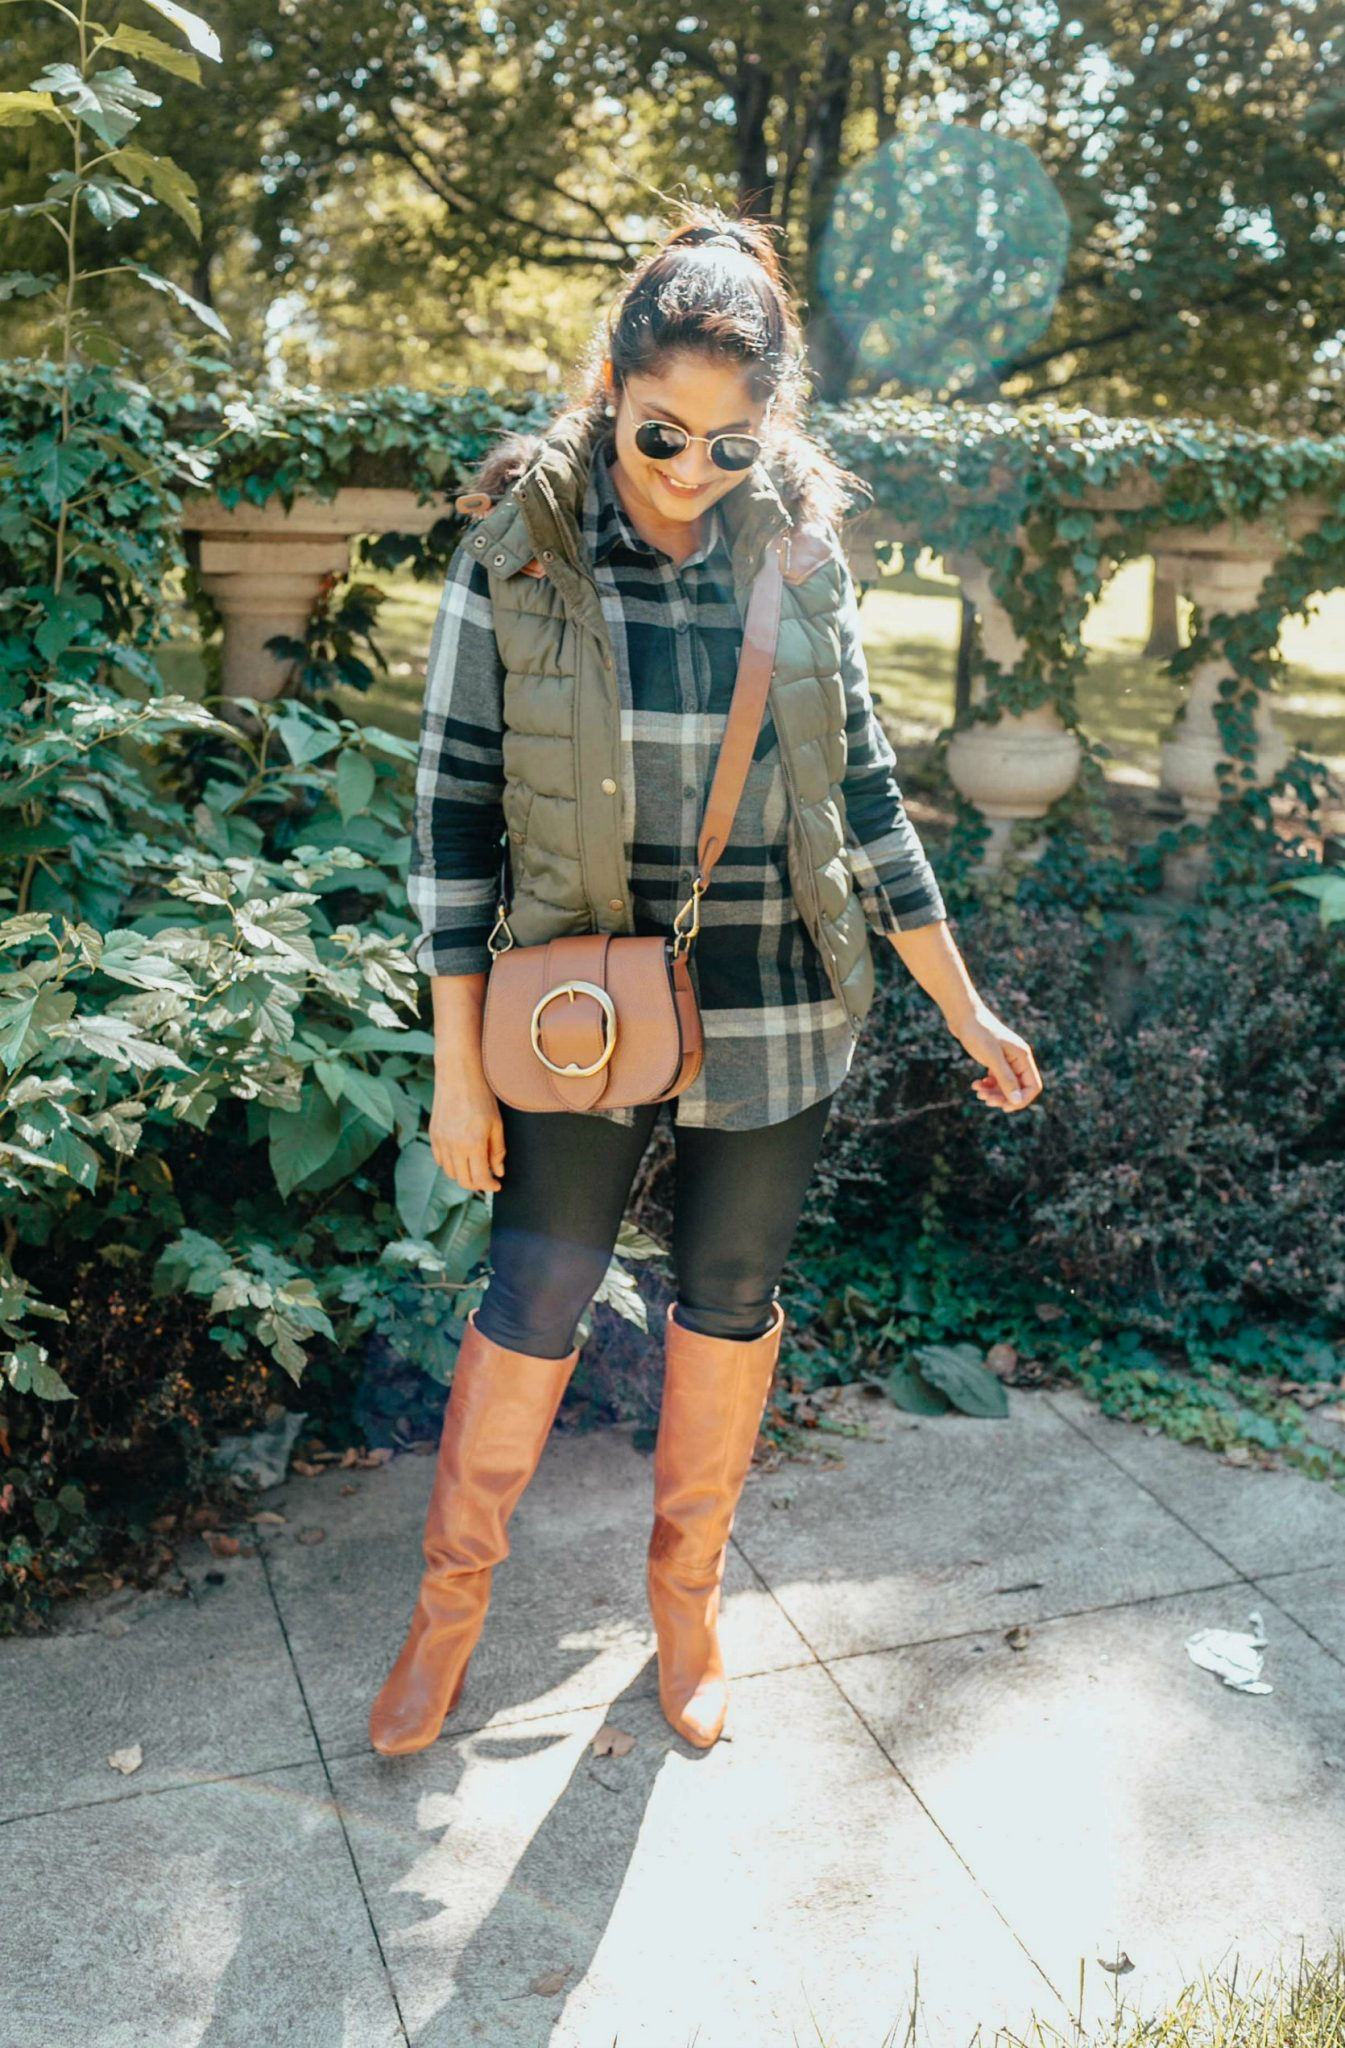 wearing Nine West Christie knee high boots (1) | Eddie Bauer boyfriend flannel shirt styled 4 ways, featured by top Ohio modest fashion blog, Dreaming Loud